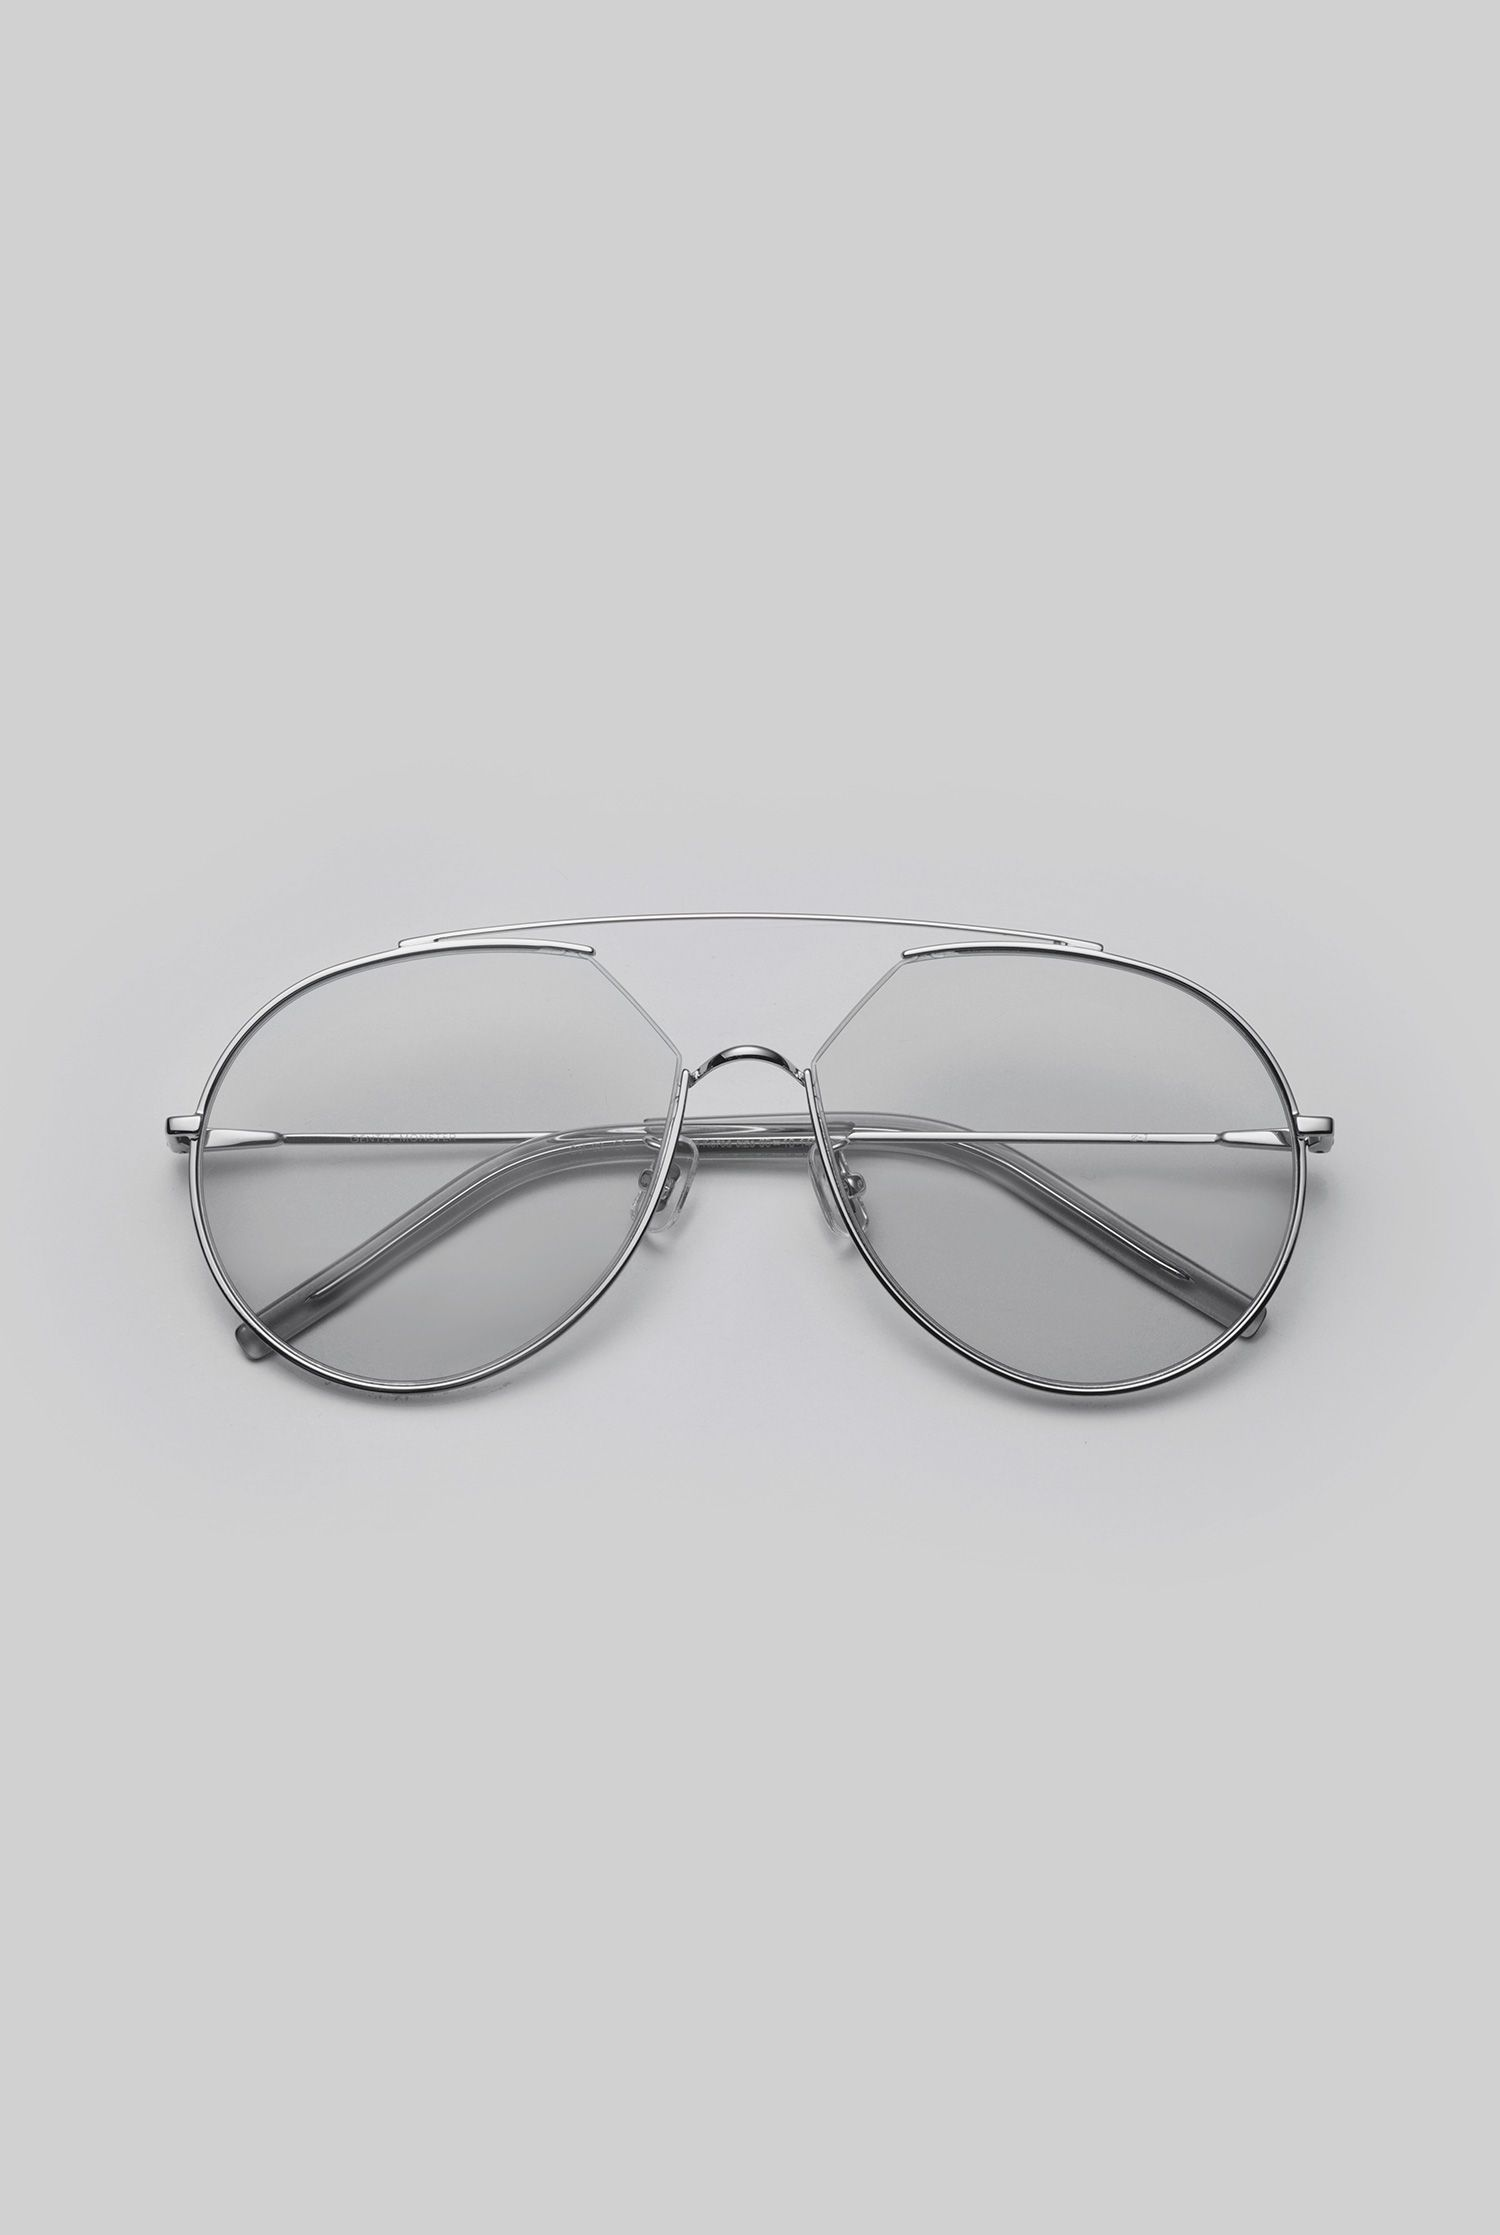 421307f14b3e GENTLE MONSTER 2018 Sunglasses Z-1 02(G) Stainless steel front and  Stainless steel temples in silver